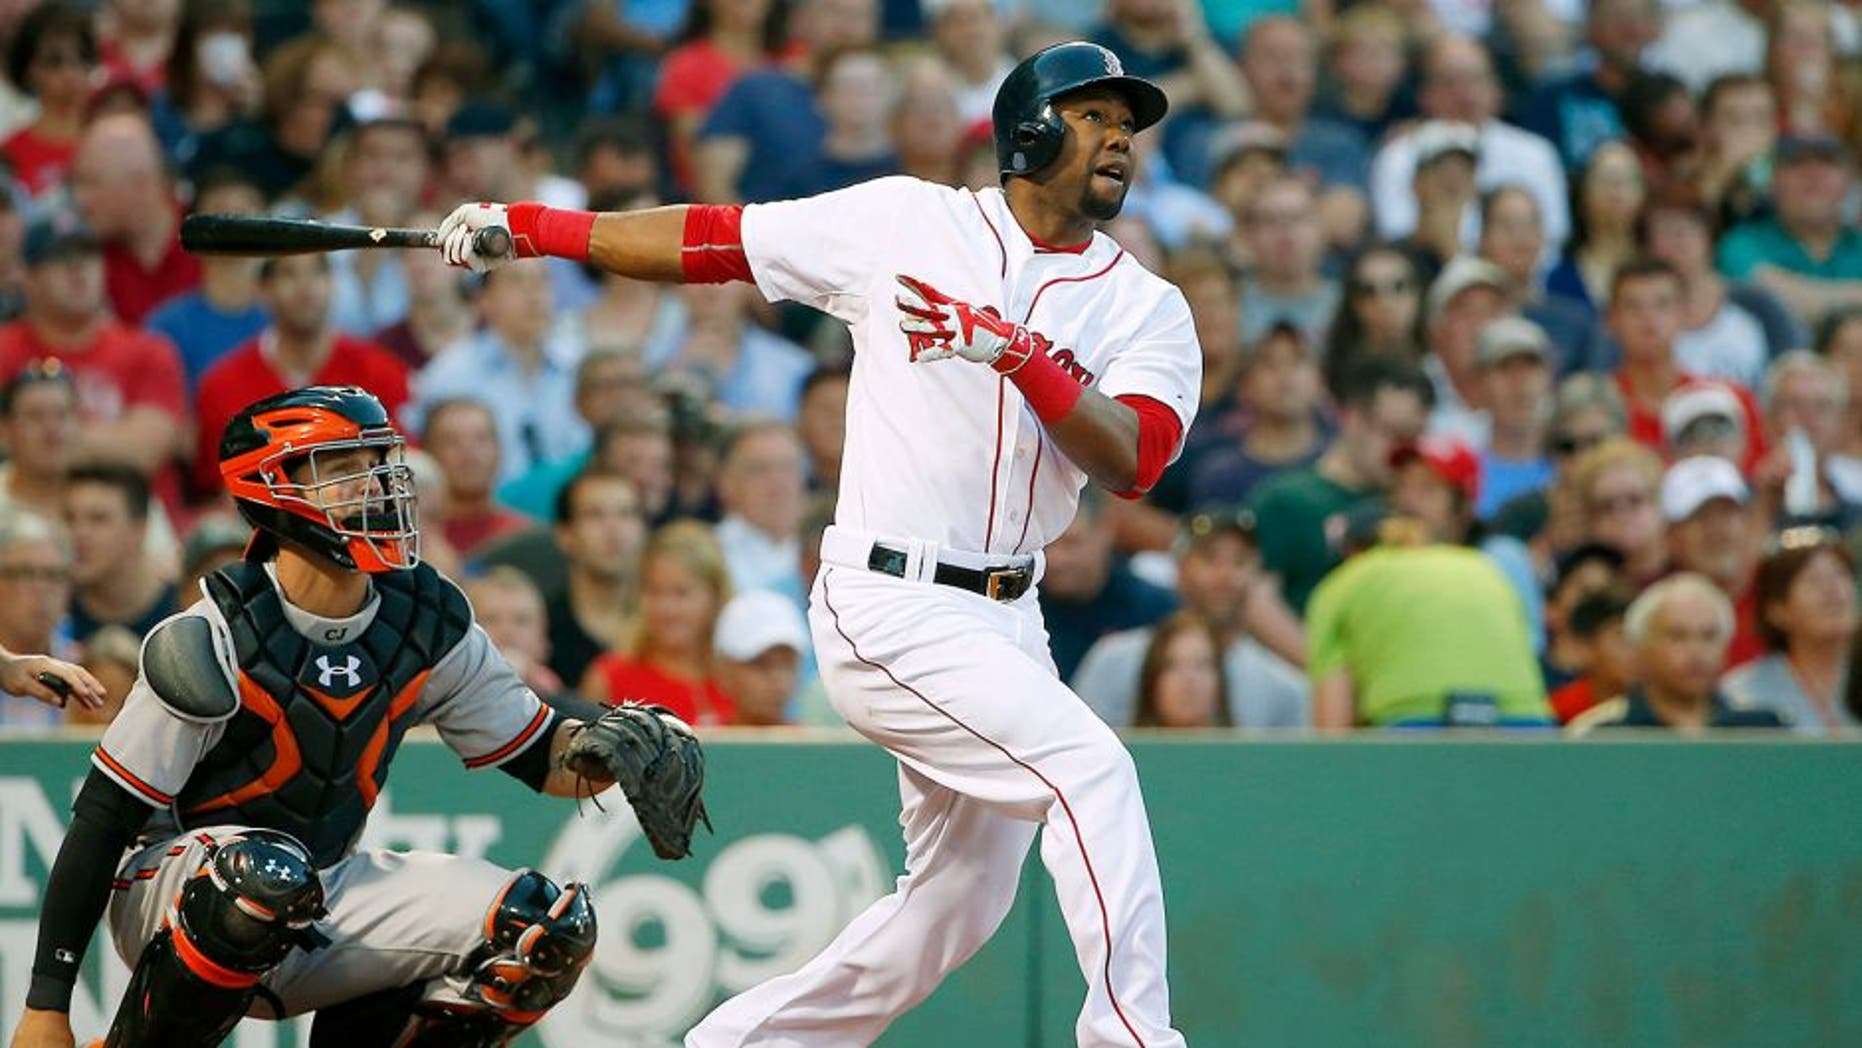 BOSTON, MA - June 24: Alejandro De Aza #31 of the Boston Red Sox during the fourth inning of the game against the Baltimore Orioles at Fenway Park on June 24, 2015 in Boston, Massachusetts. (Photo by Winslow Townson/Getty Images)